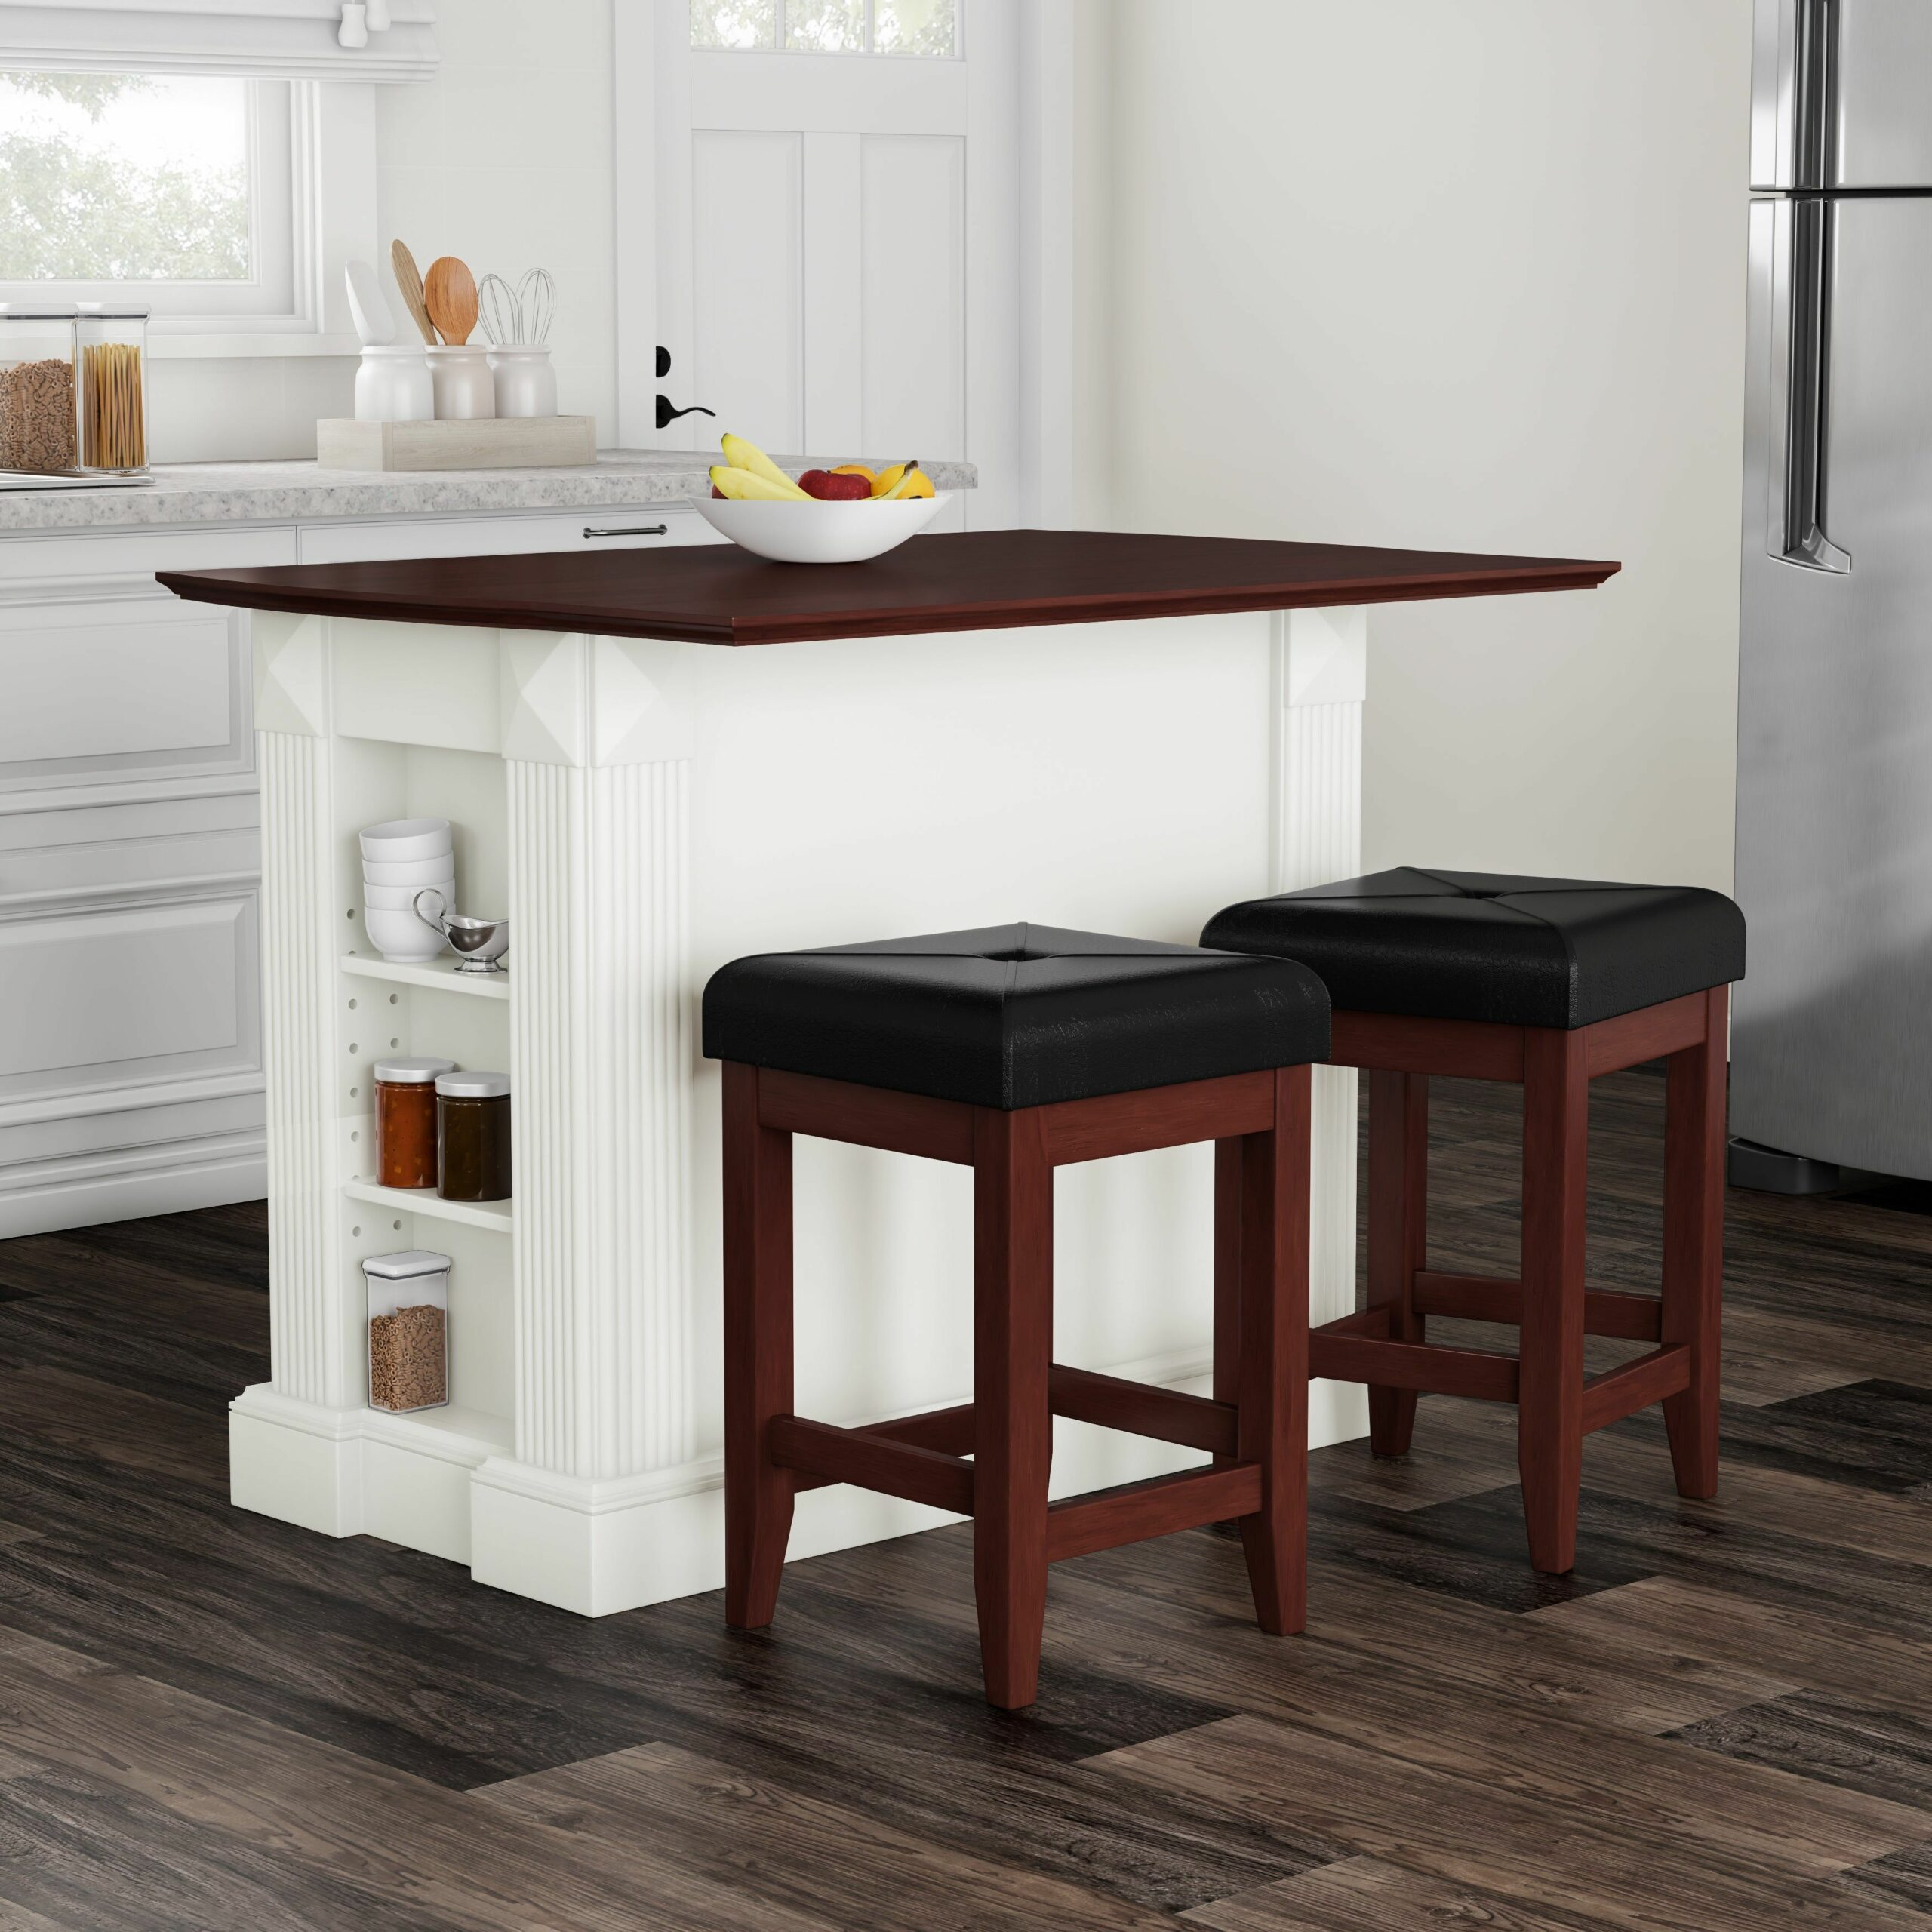 White Kitchen Islands With Stools